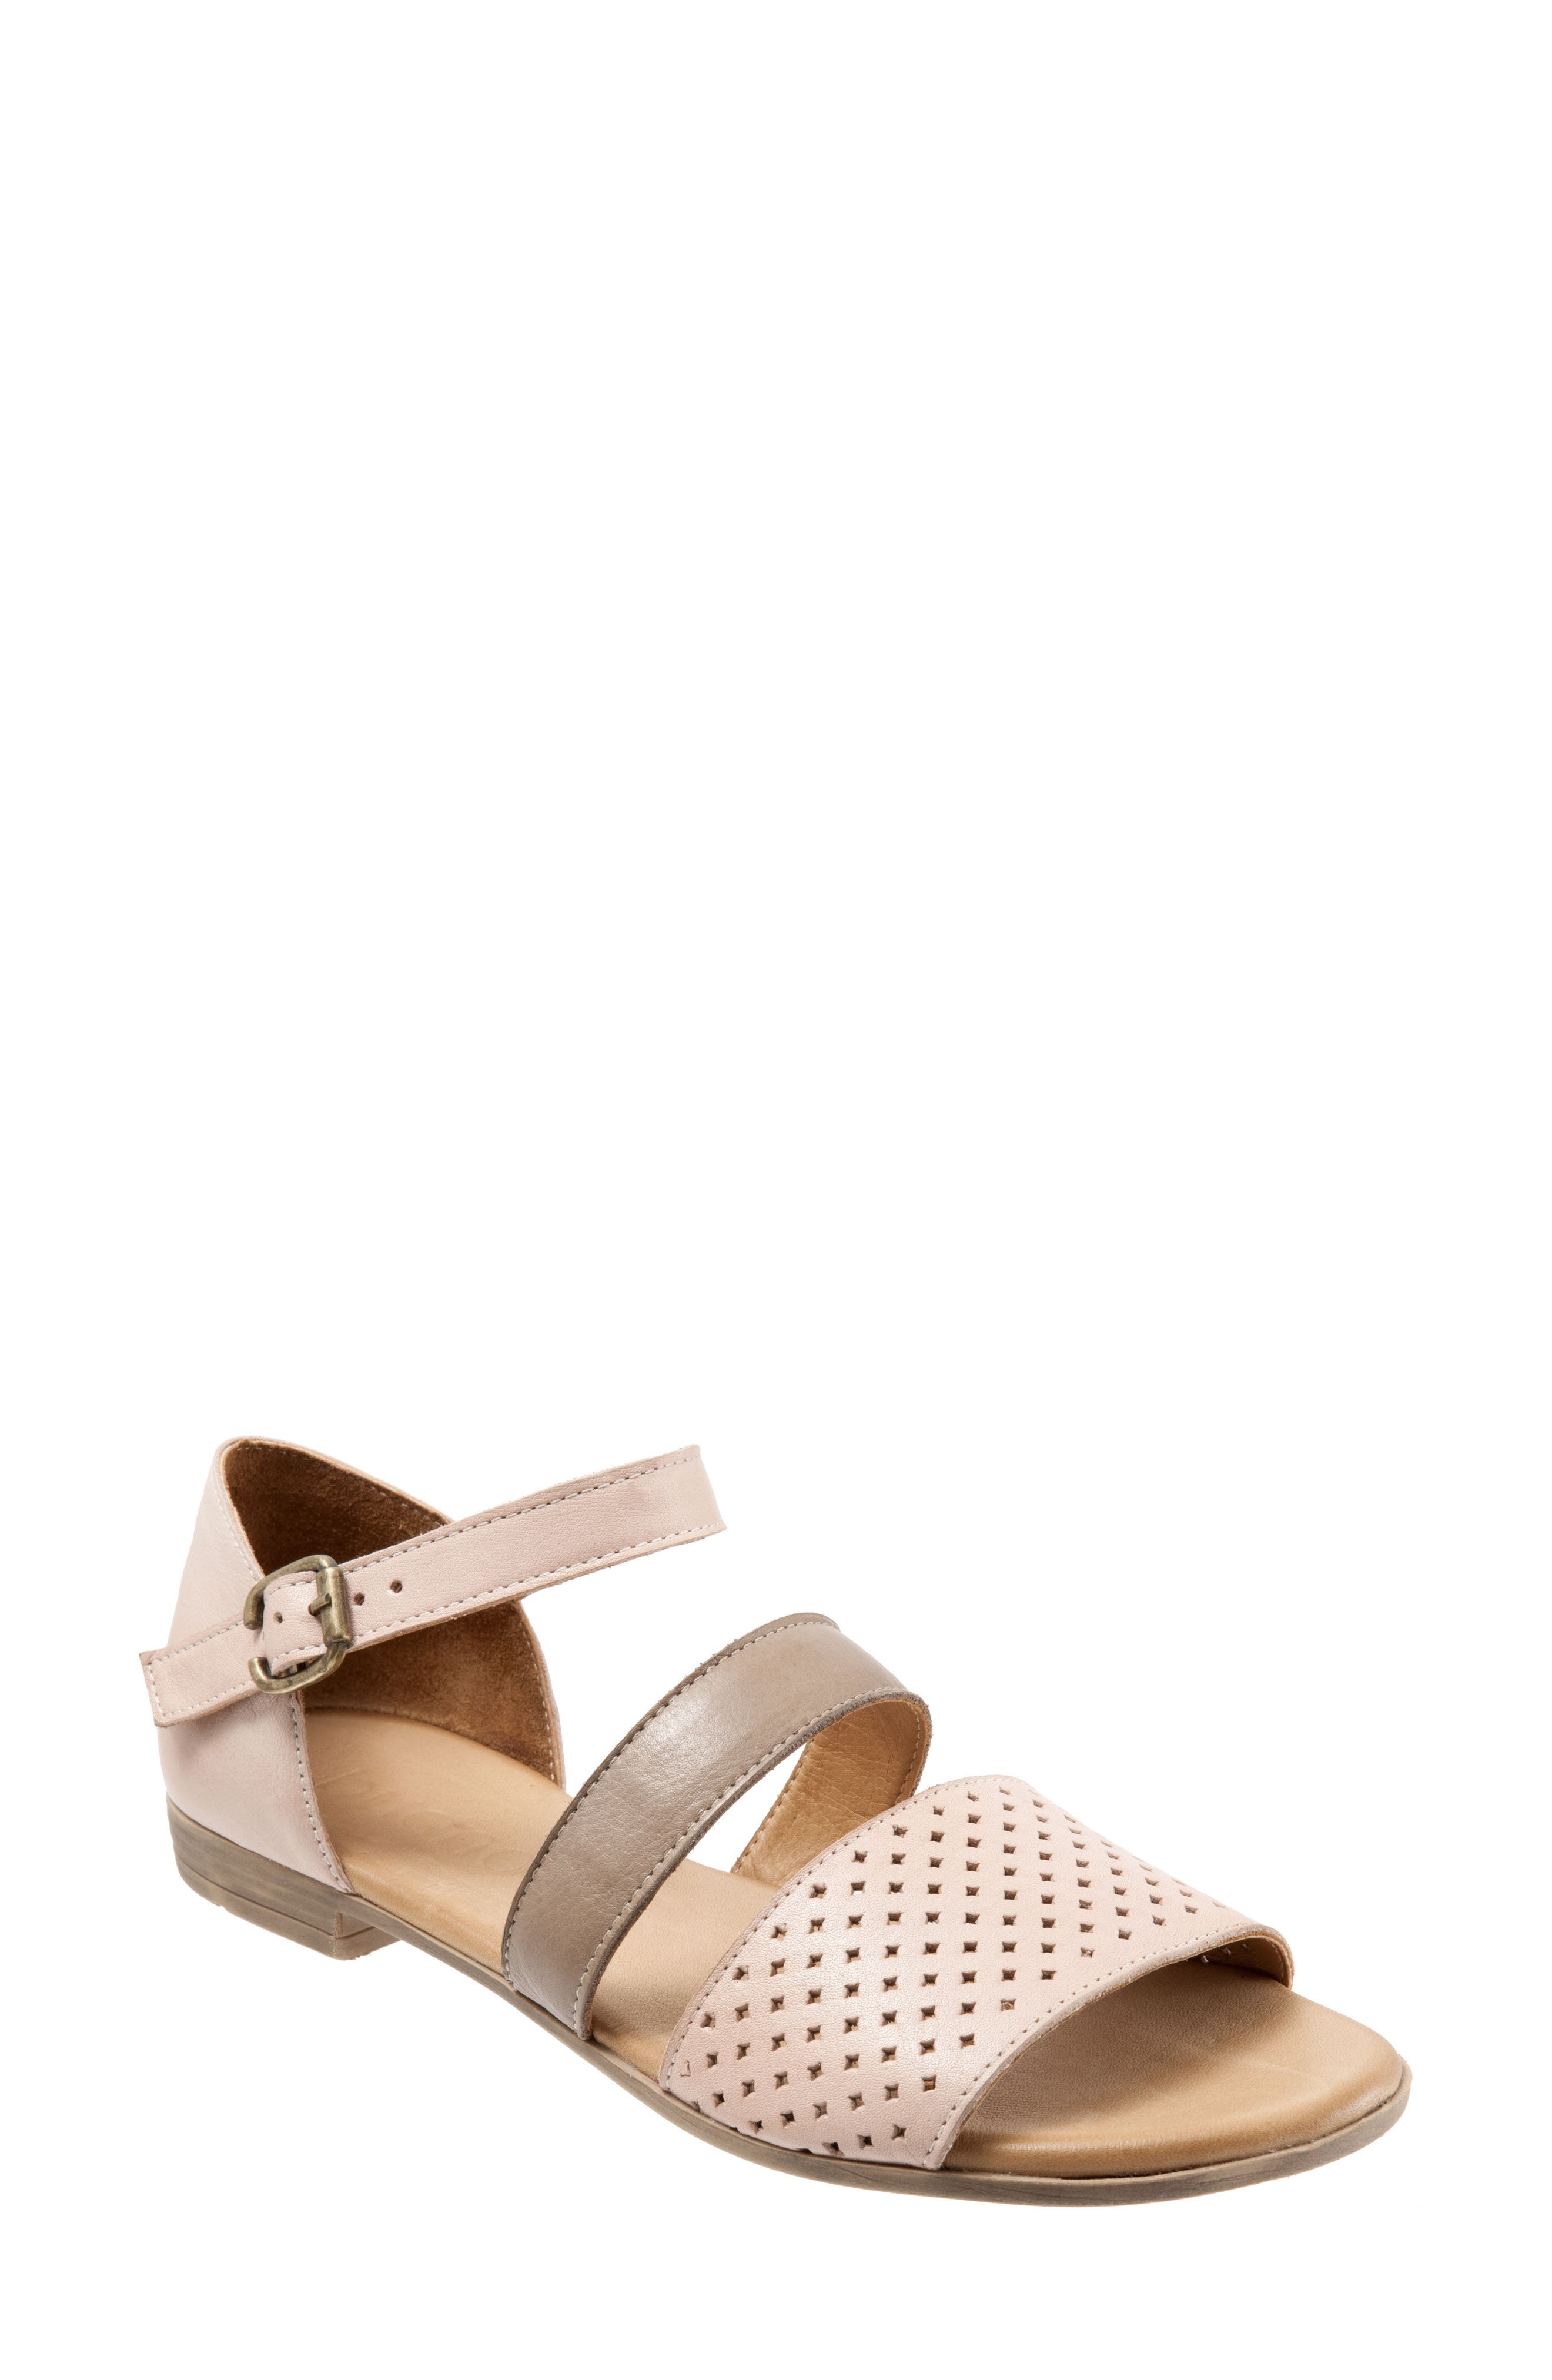 Janet Perforated Flat Sandal,                             Main thumbnail 1, color,                             Pale Pink Leather